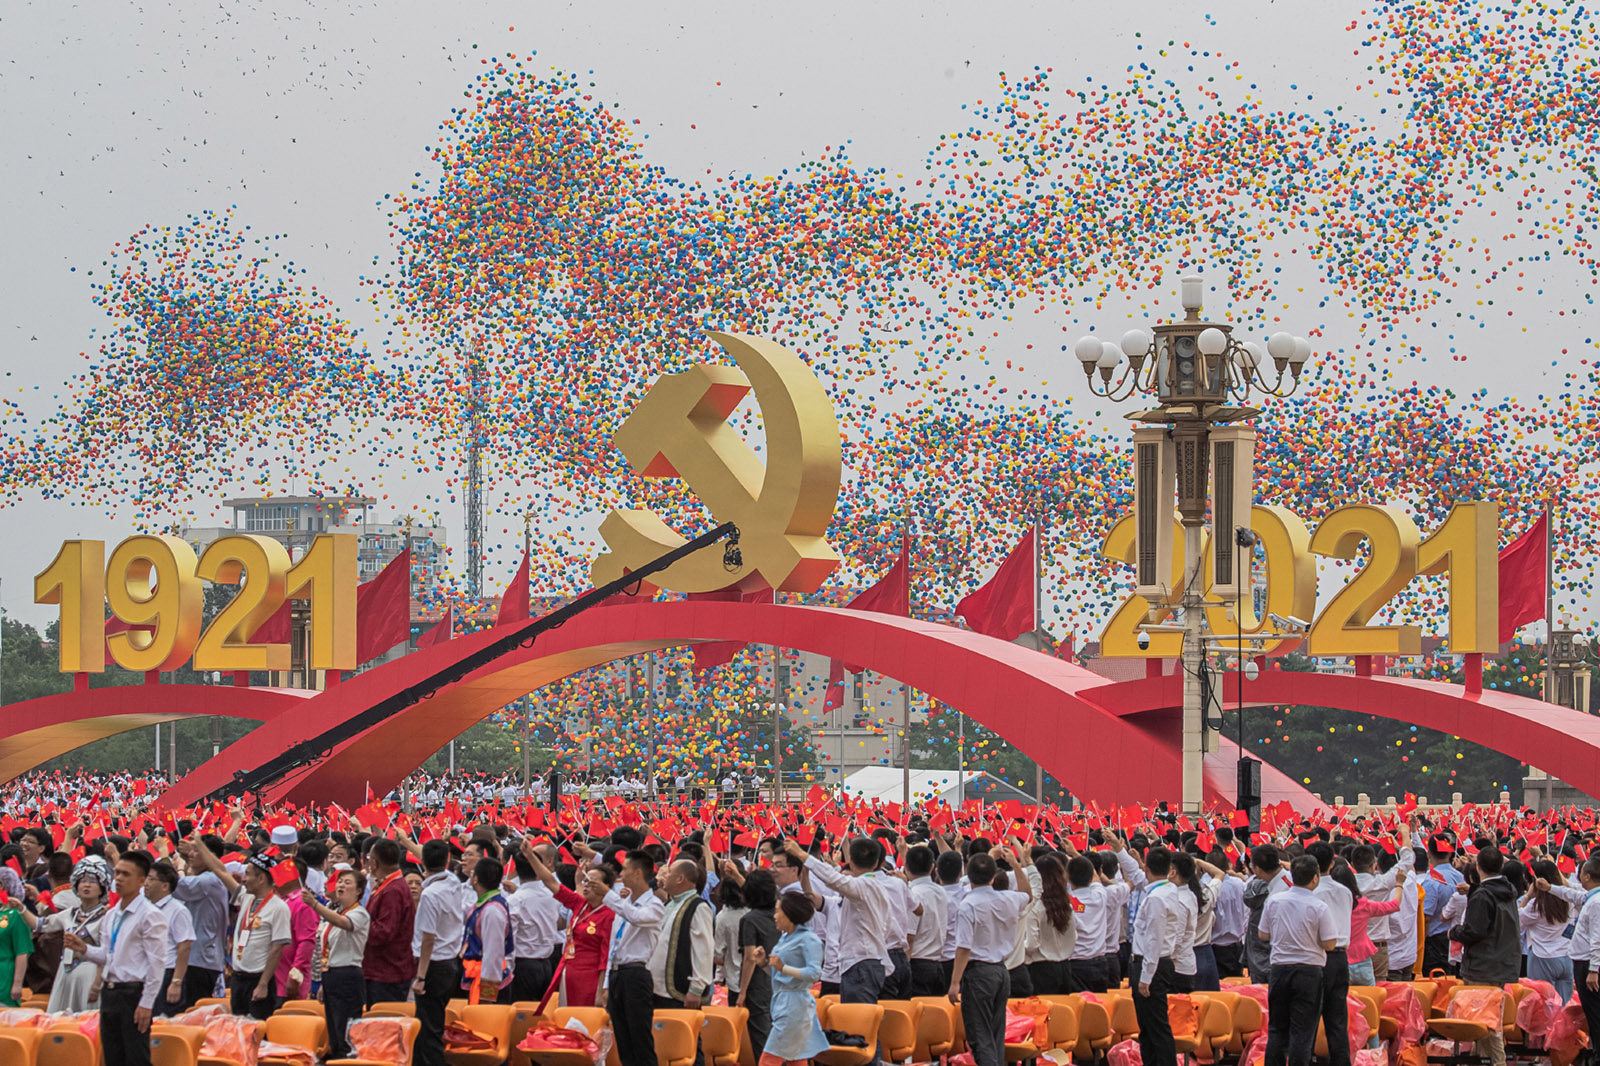 A celebration of the one hundredth anniversary of the founding of the Chinese Communist Party, Tiananmen Square